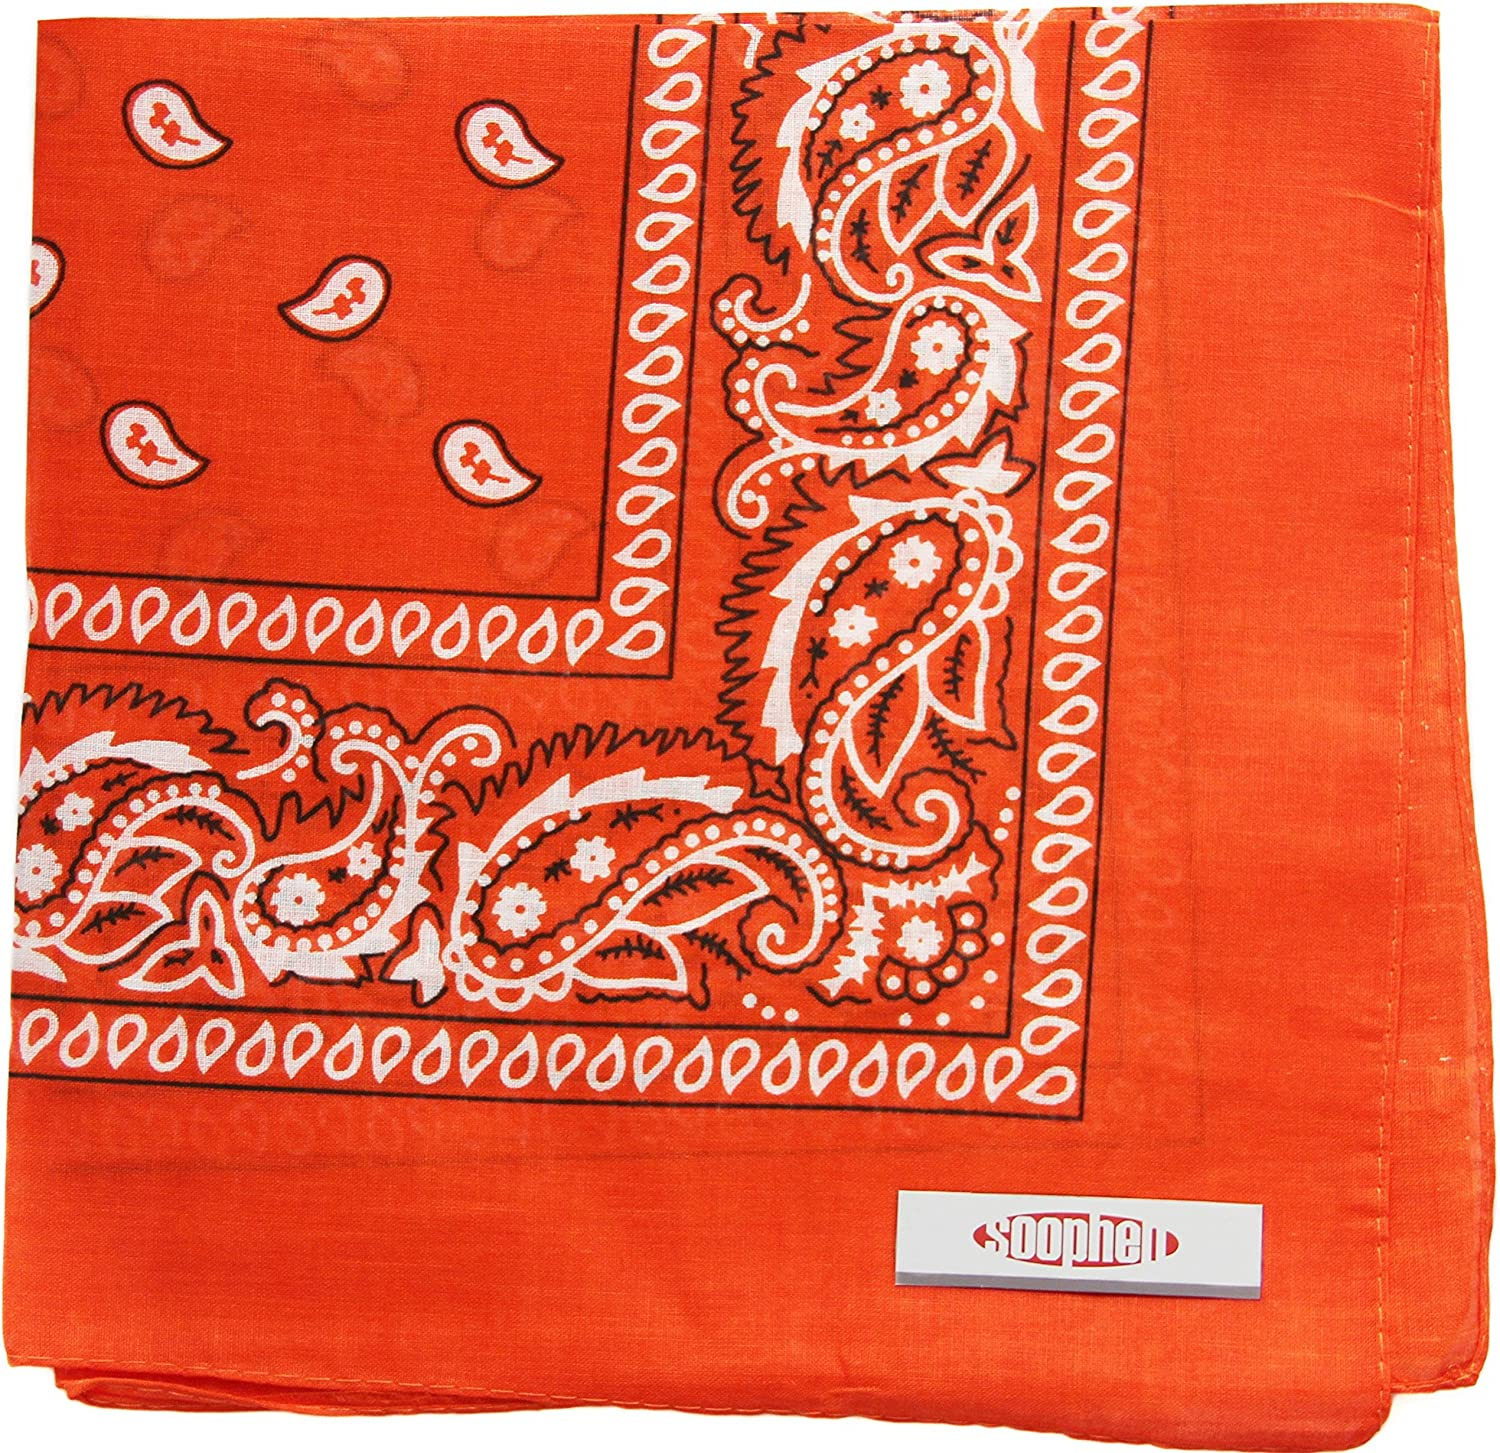 Soophen One Dozen Cowboy Bandanas Free shipping anywhere in the nation Cotton Max 73% OFF inch 100% x 22